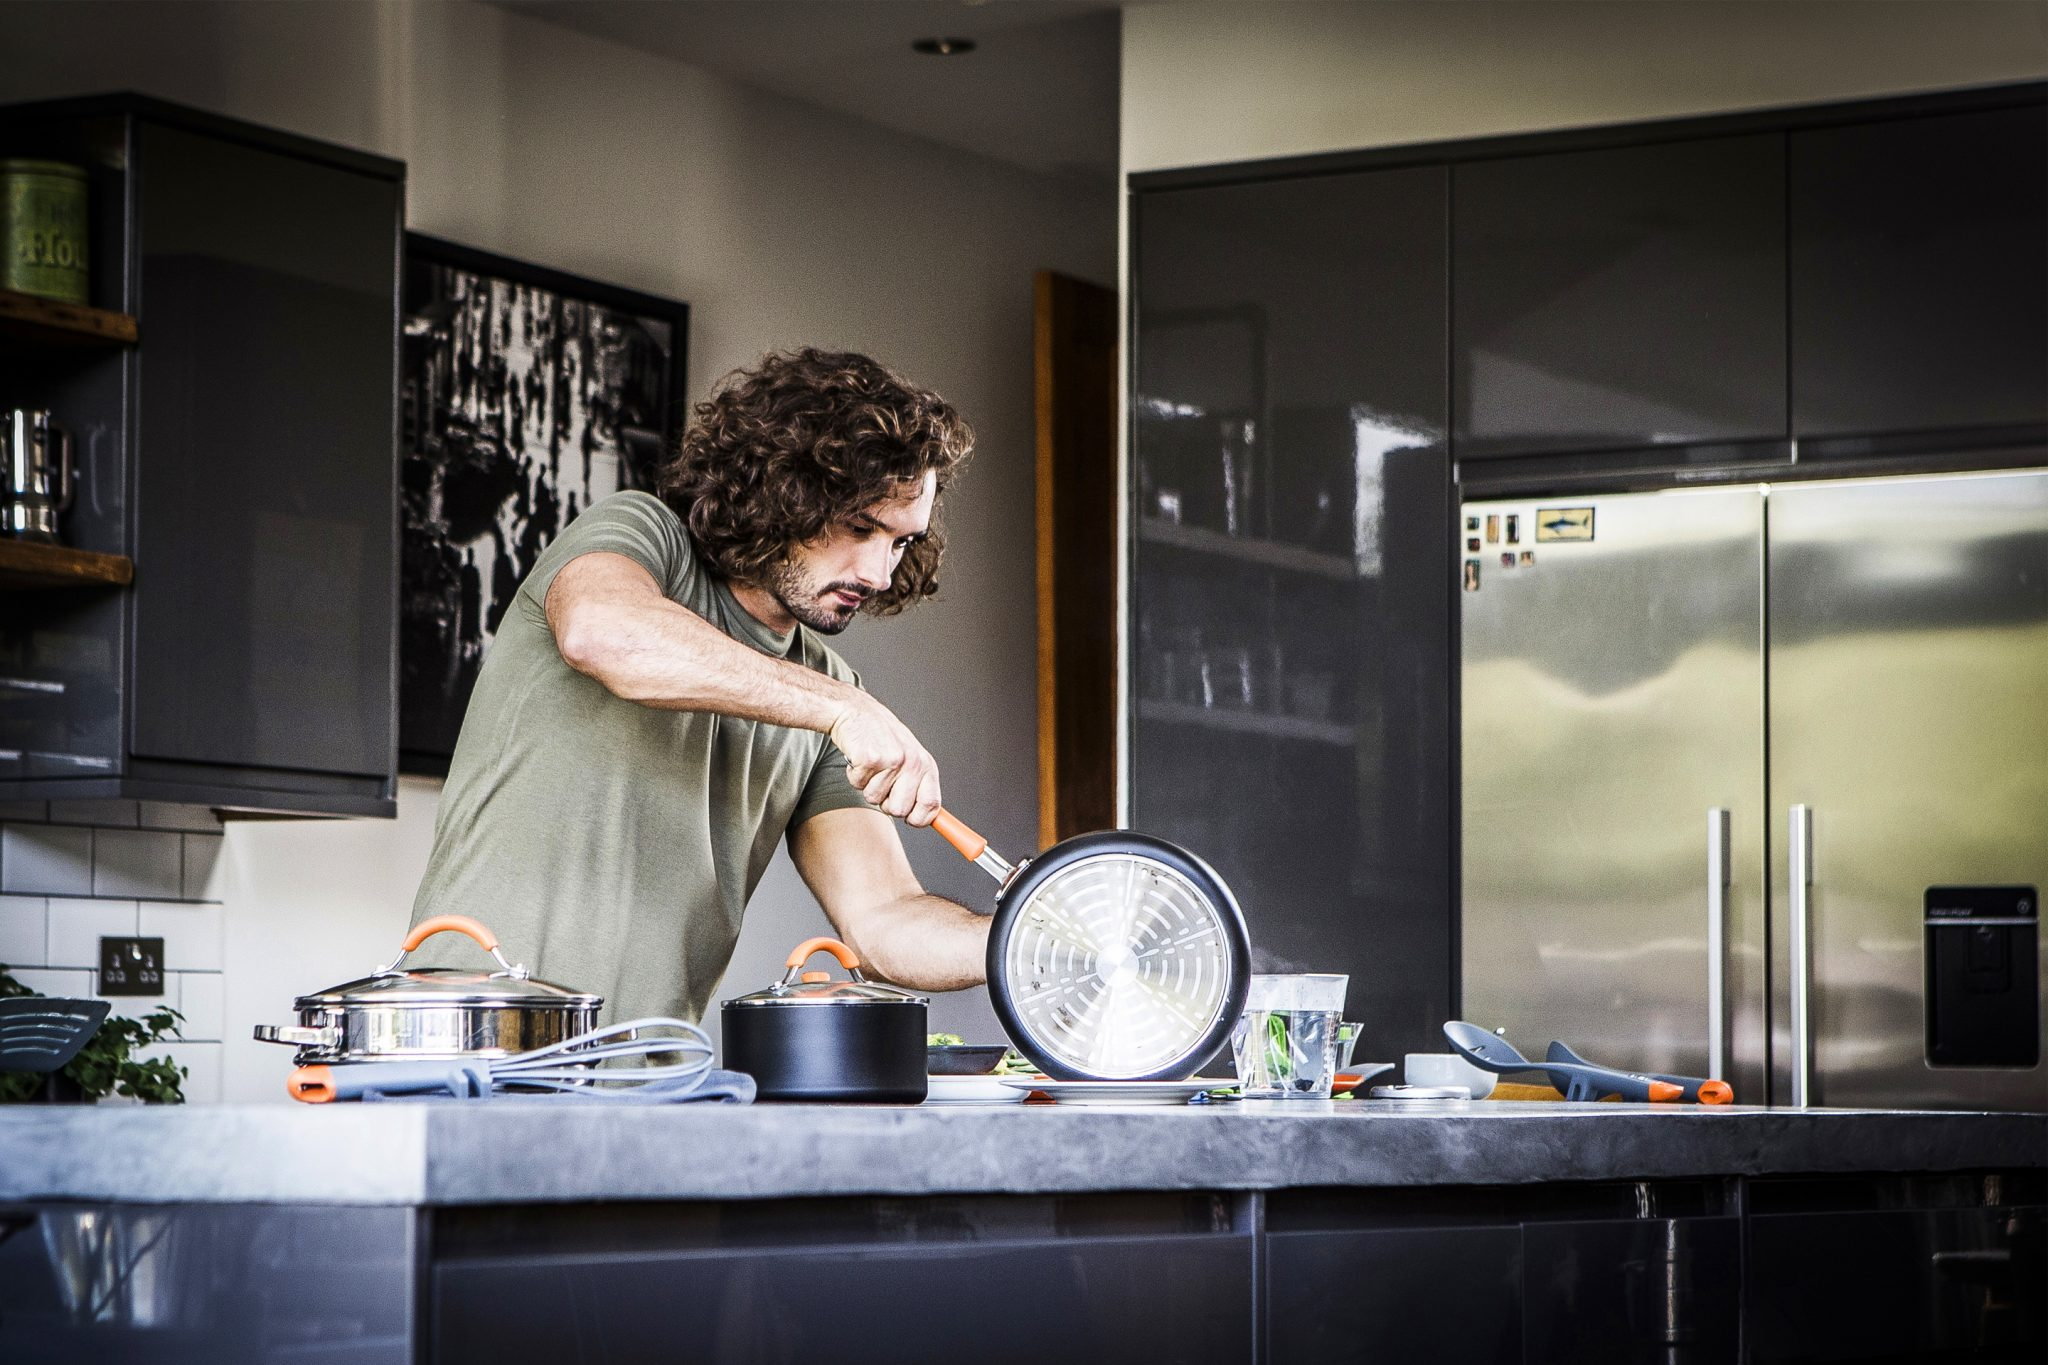 food-photography-in-london-for-the-bocy-coach-joe-wicks